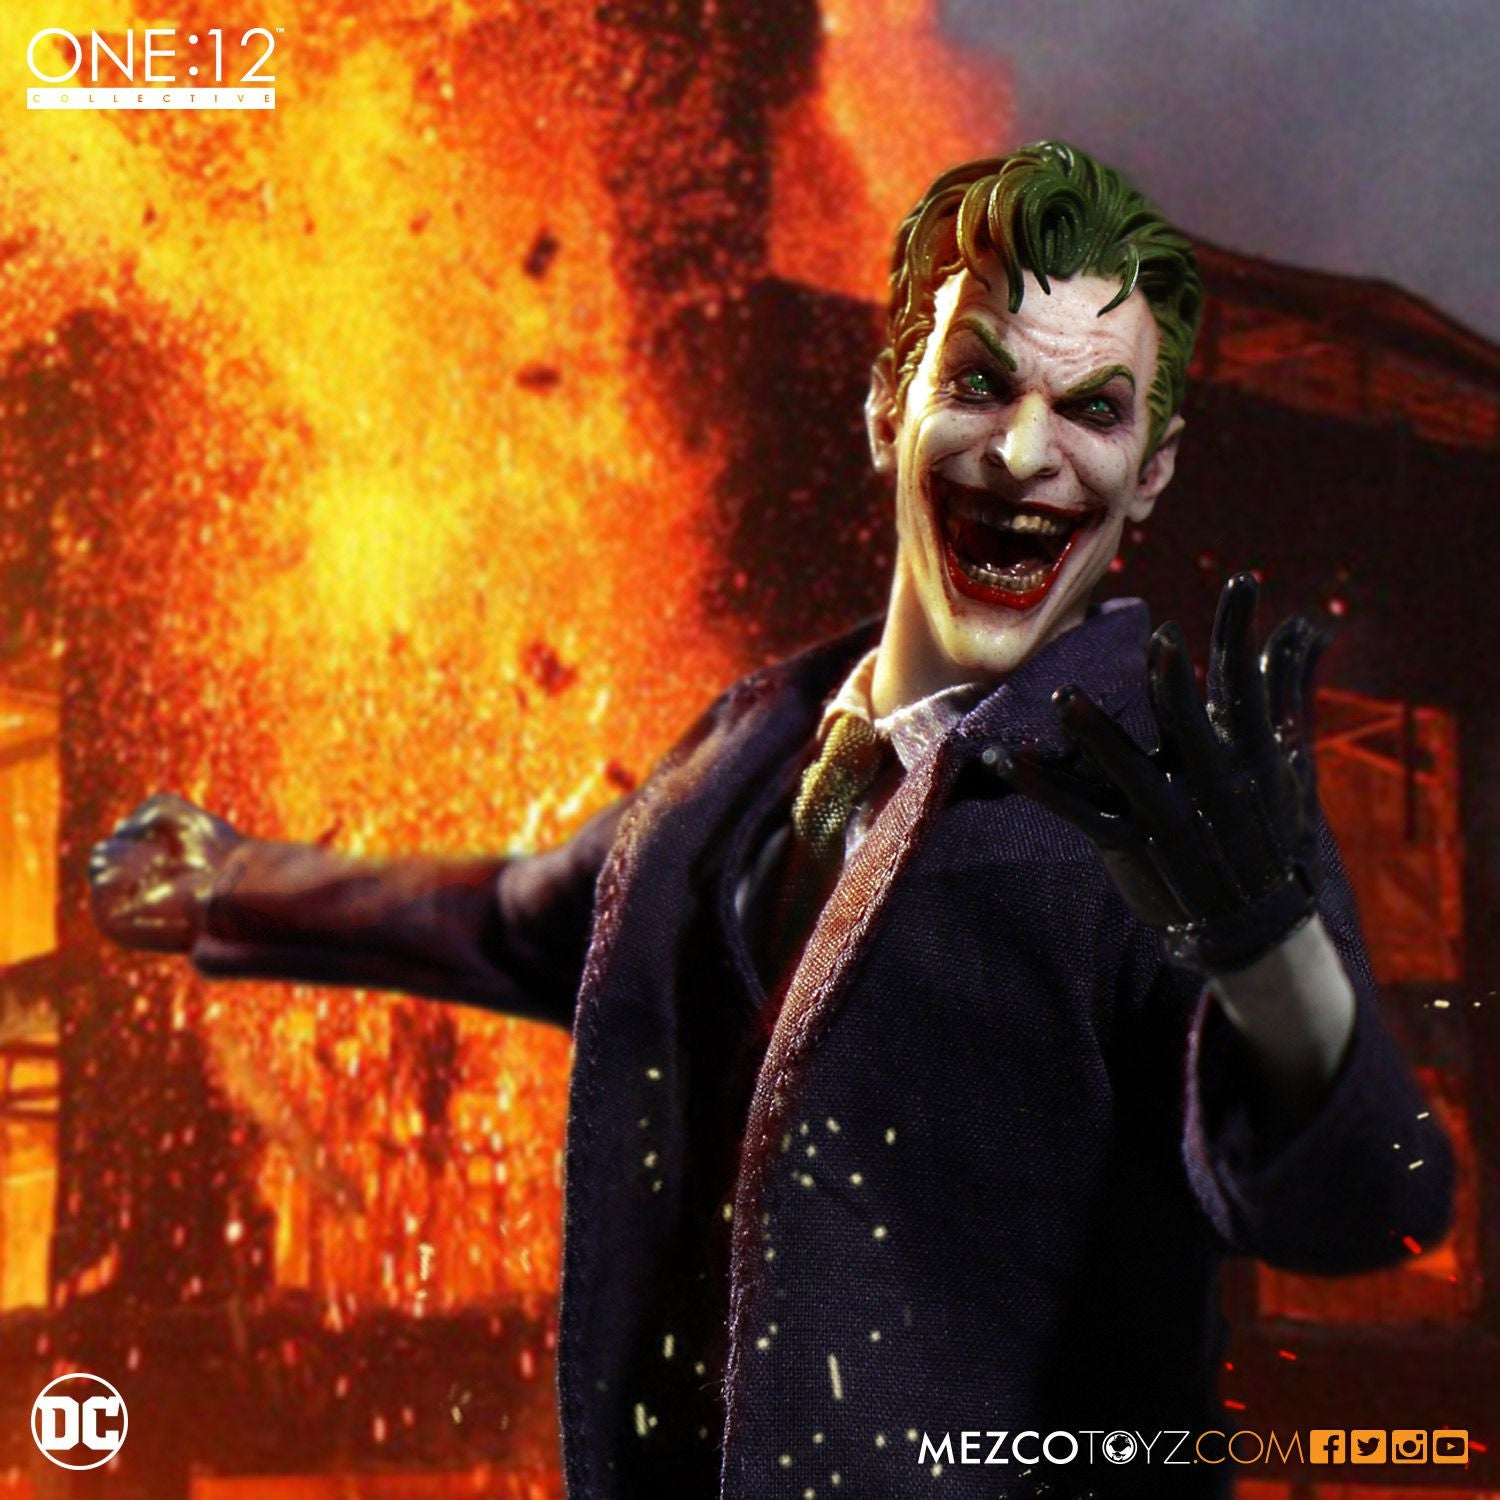 Mezco - One:12 Collective - The Joker - Marvelous Toys - 7